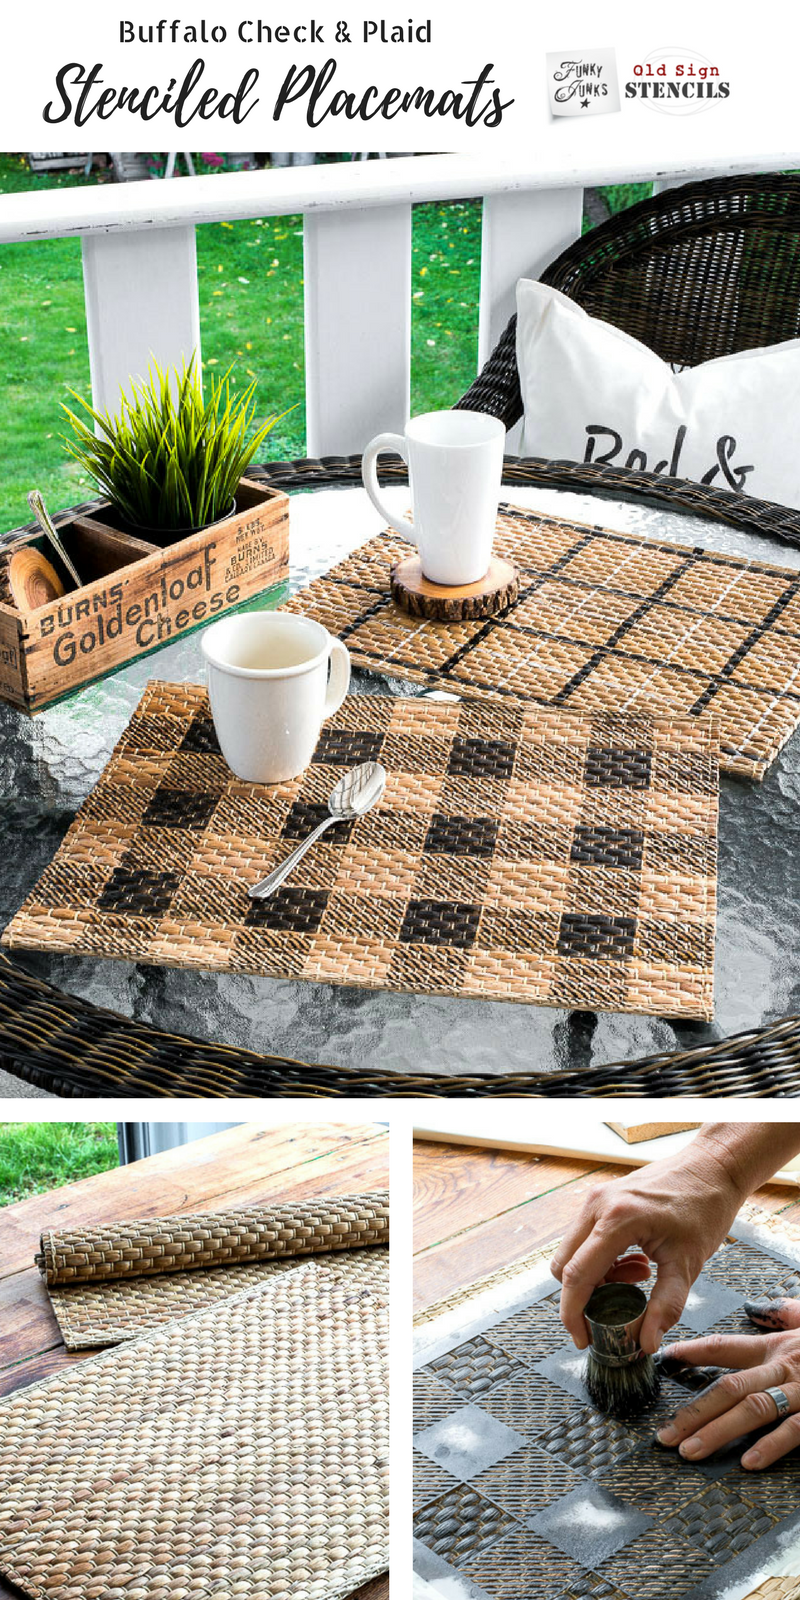 Buffalo Check And Plaid Placemats For A Fall Or Everyday Table Buffalo Plaid Decor Diy Placemats Plaid Decor